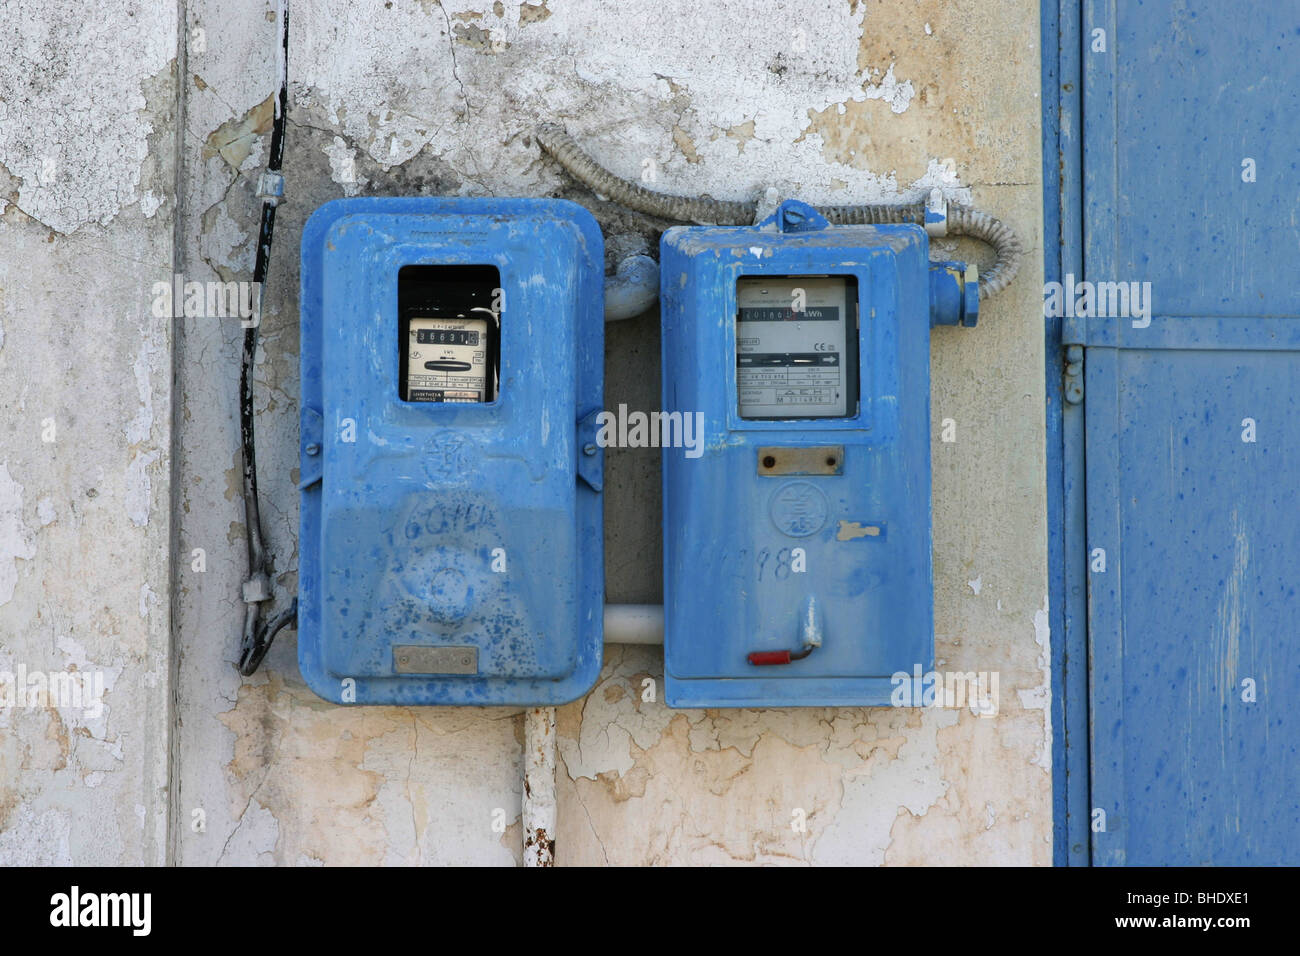 Electricity and gas meter of a Greek house - Stock Image